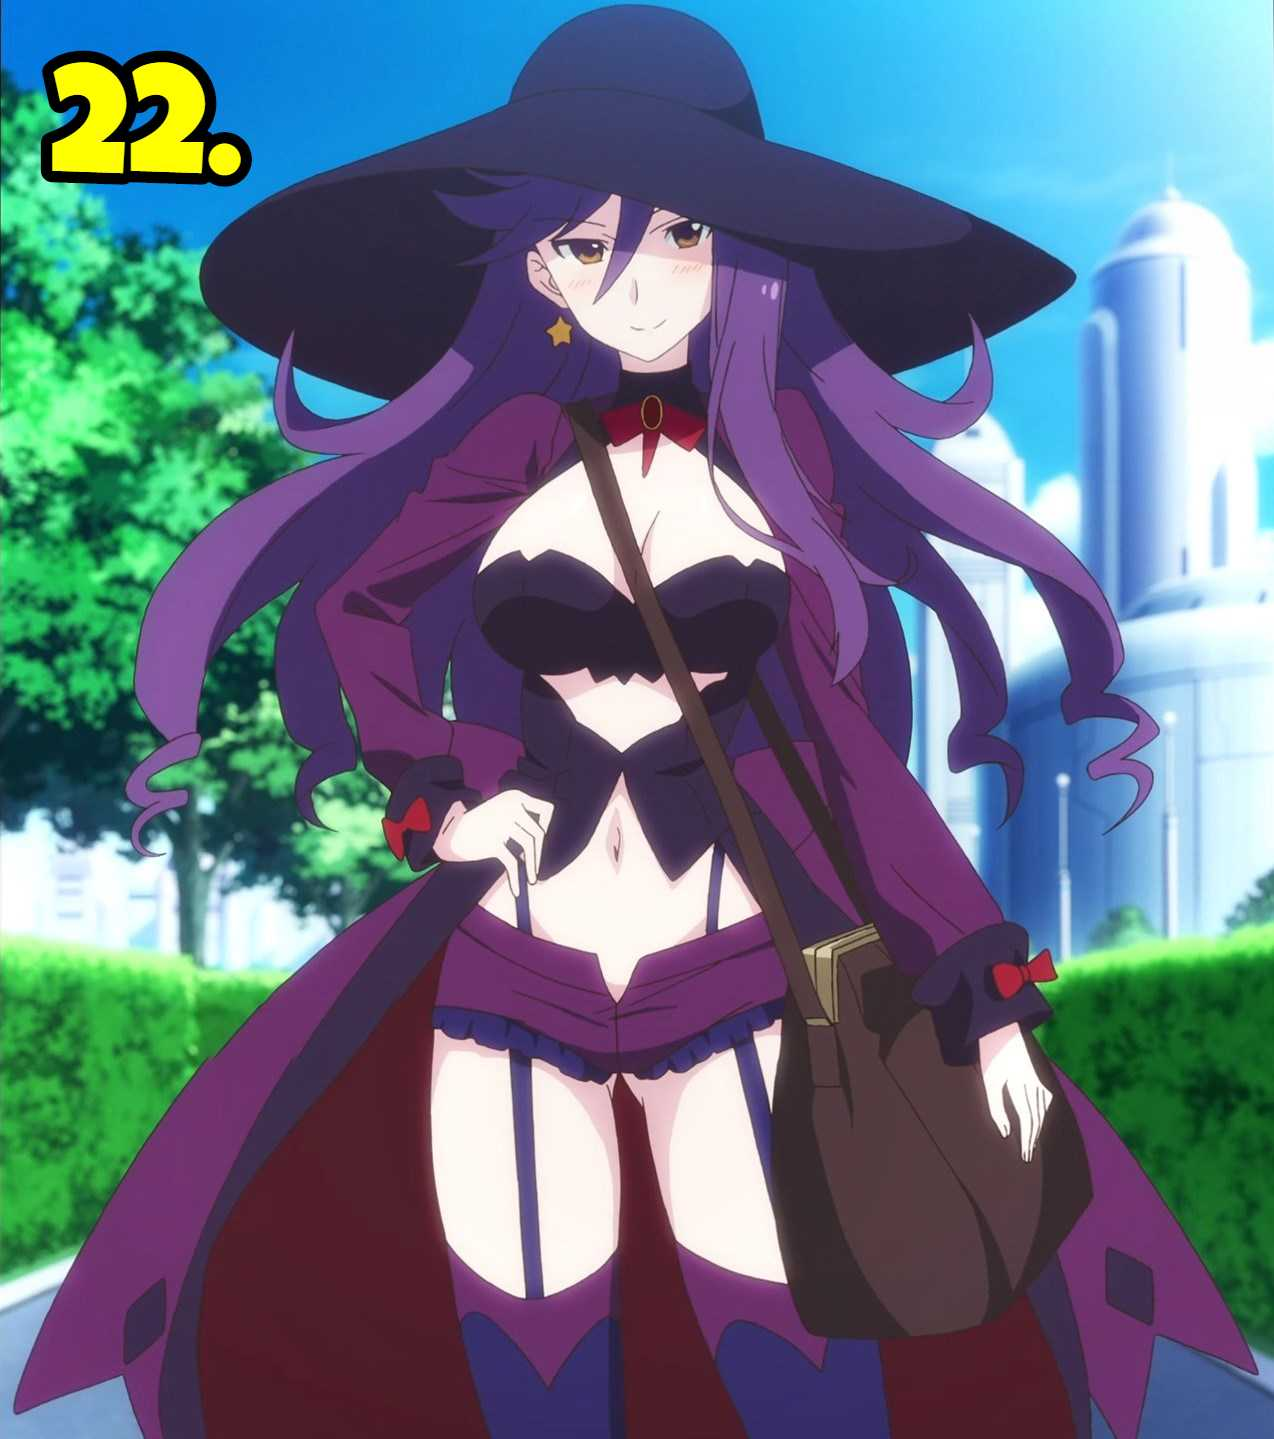 8 Sexiest Anime Vampire Girls of All Time - GEEKS ON COFFEE